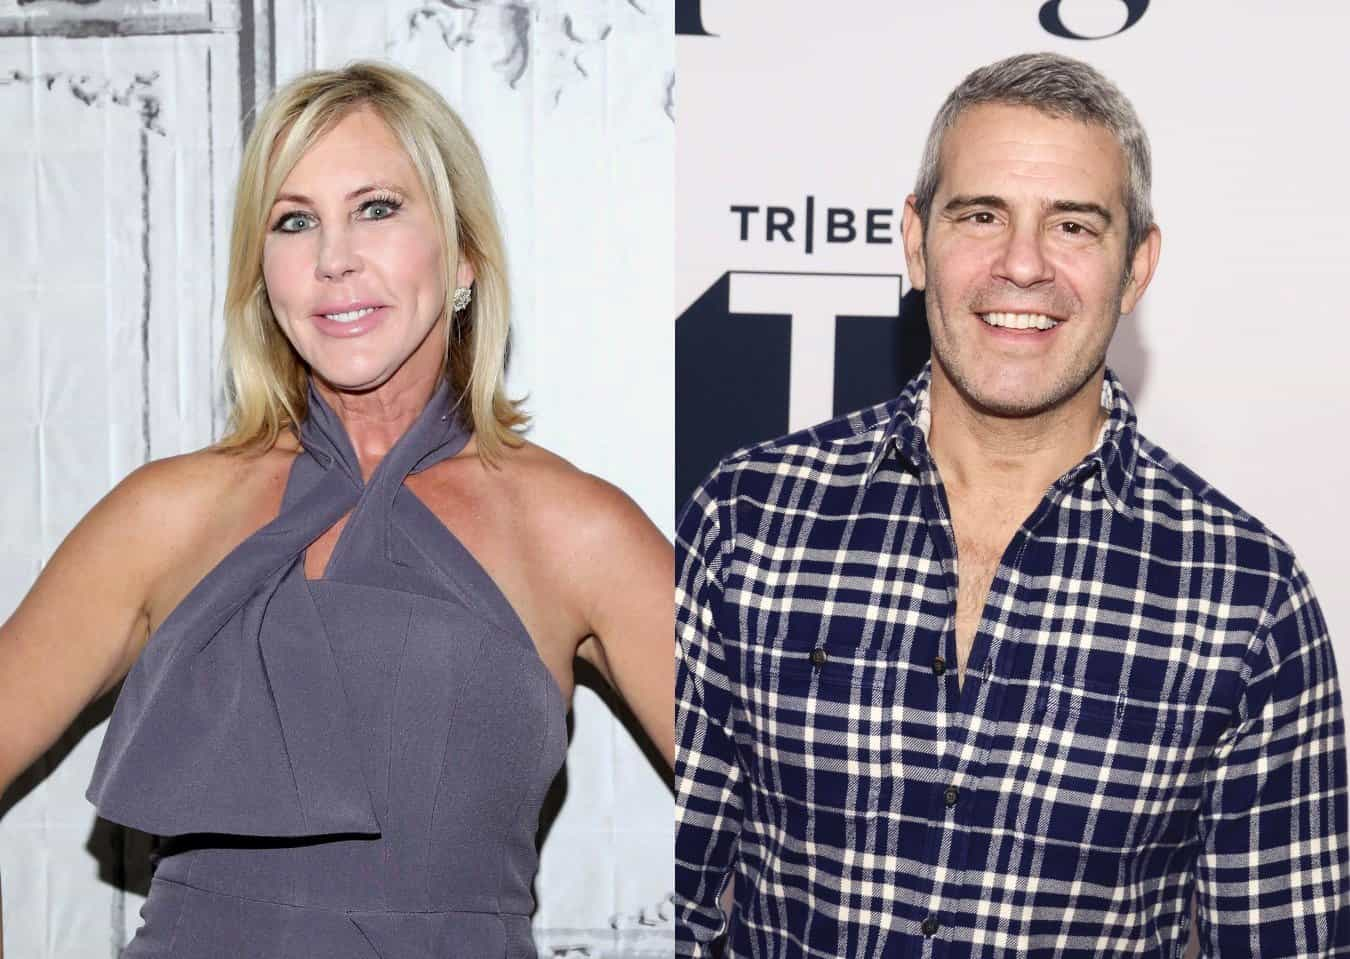 Vicki Gunvalson Disses Andy Cohen After Quitting RHOC, Shares Why She Left Show and Accuses Producers of 'Manipulating' Her